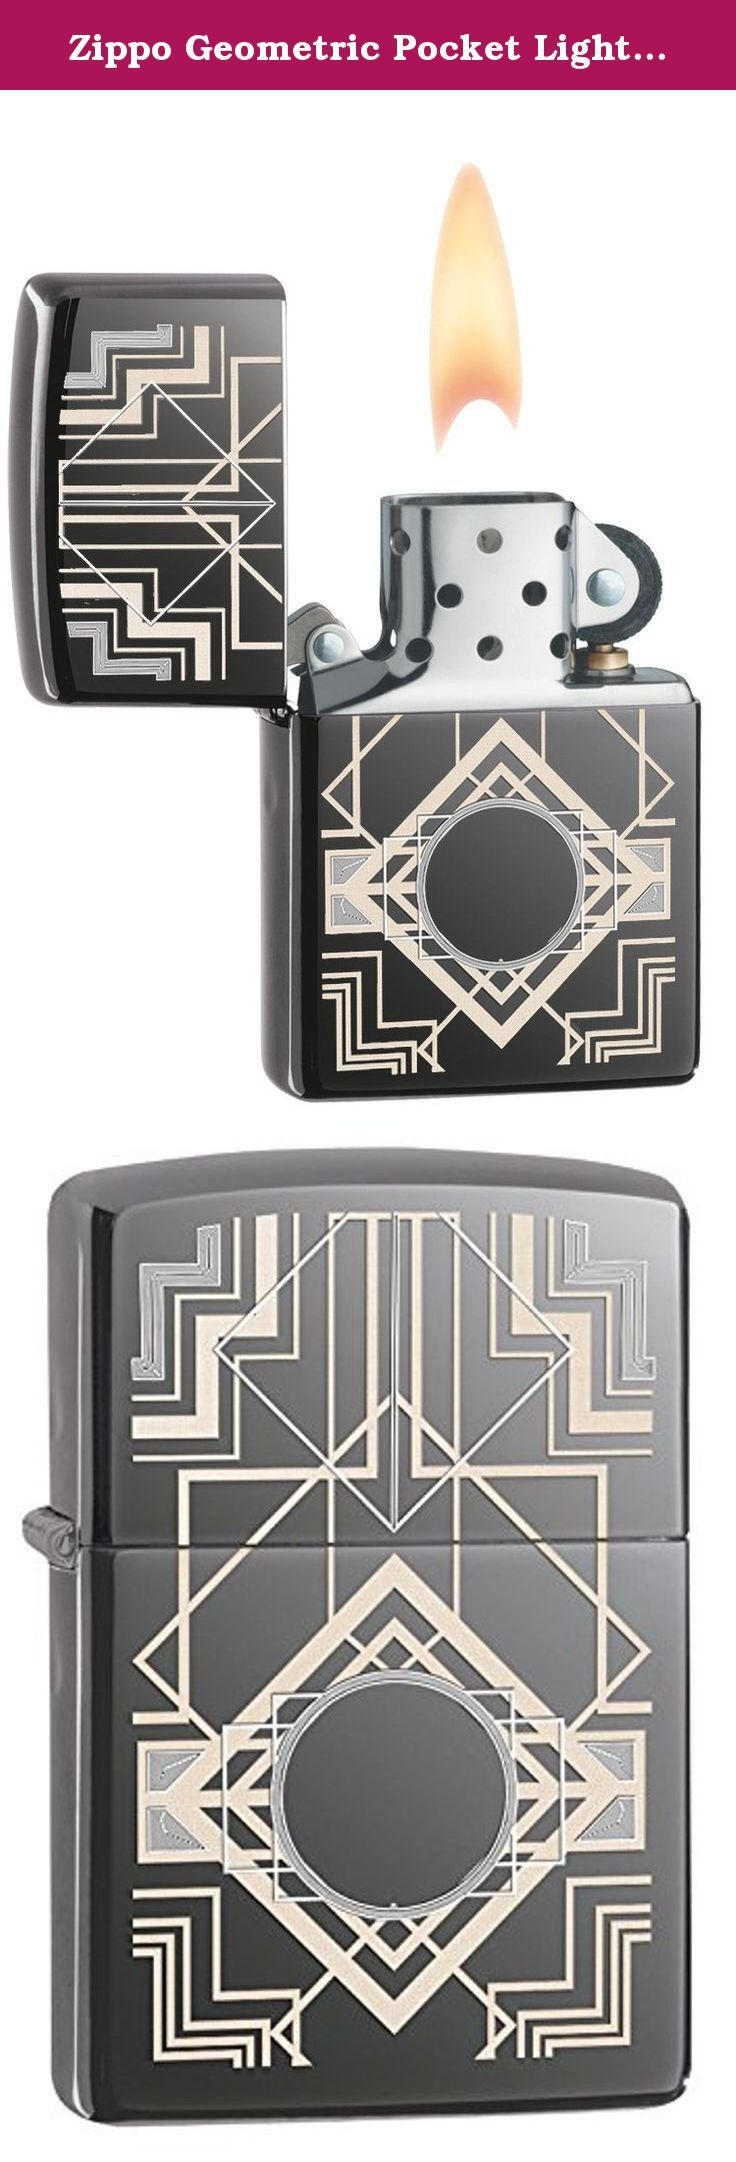 Zippo Geometric Pocket Lighter, Black Ice. Two kinds of engraving are used to give this art deco design a unique tone and texture. Comes packaged in an gift box. For optimal performance, use with Zippo premium lighter fluid.; for optimum performance of every Zippo windproof lighter, we recommend genuine Zippo premium lighter fluid, flints, and wicks.